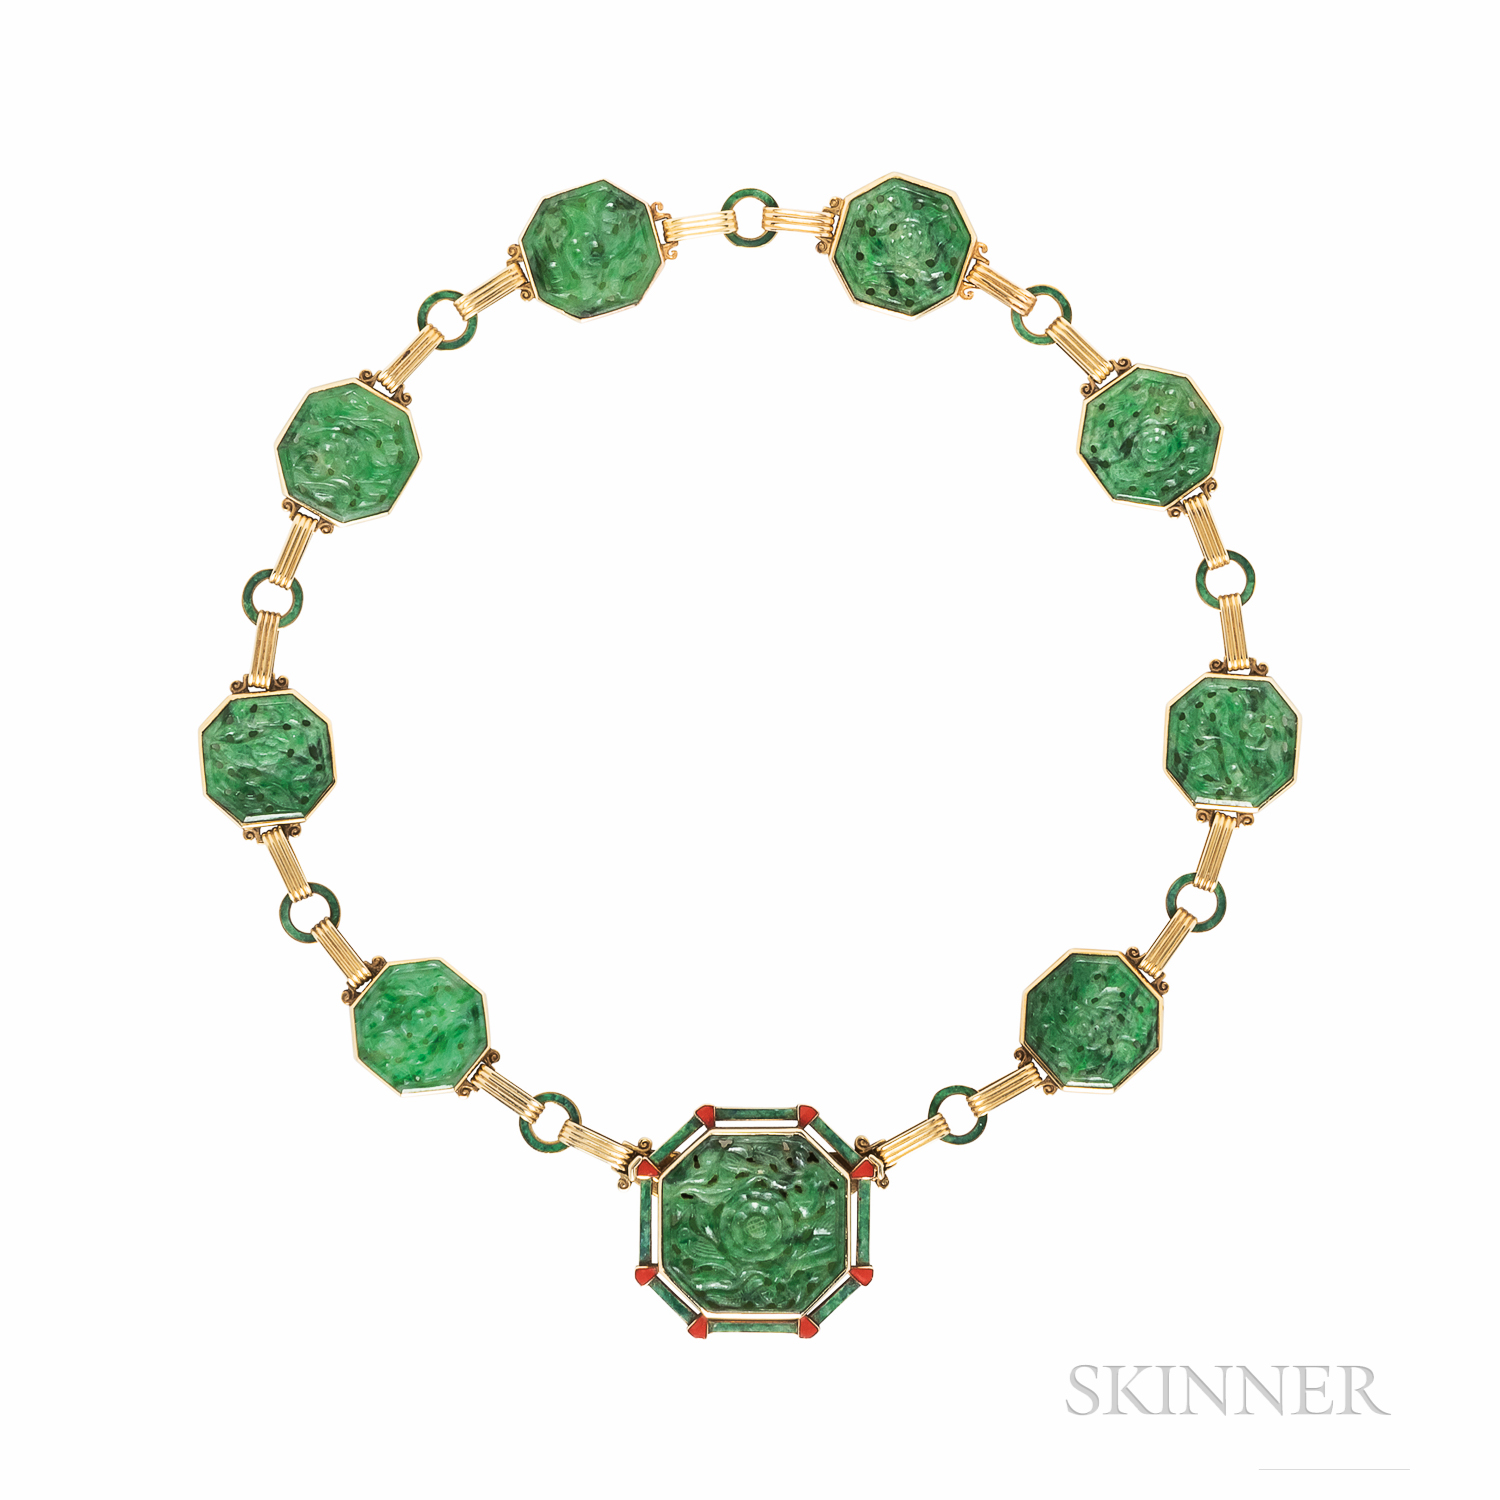 Art Deco Gold, Jade, and Enamel Necklace